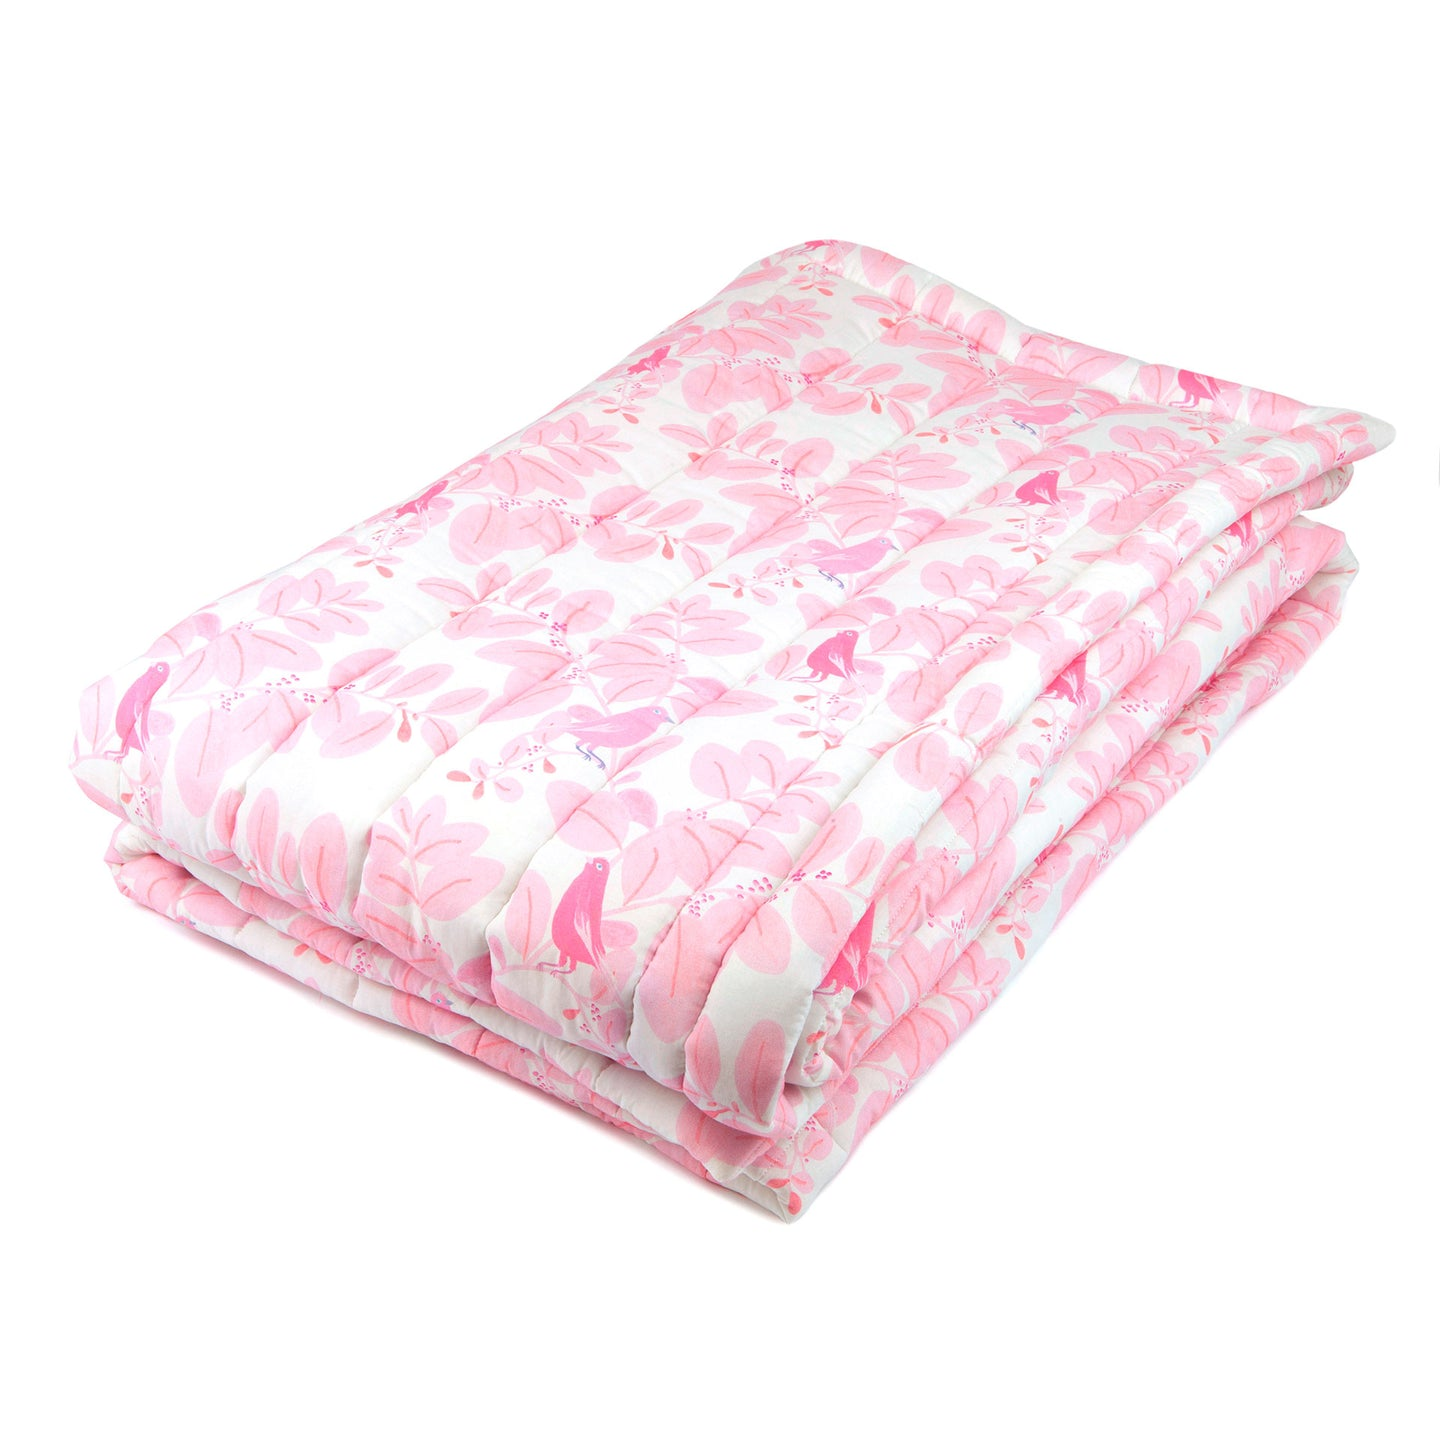 Plaid songe rose en coton